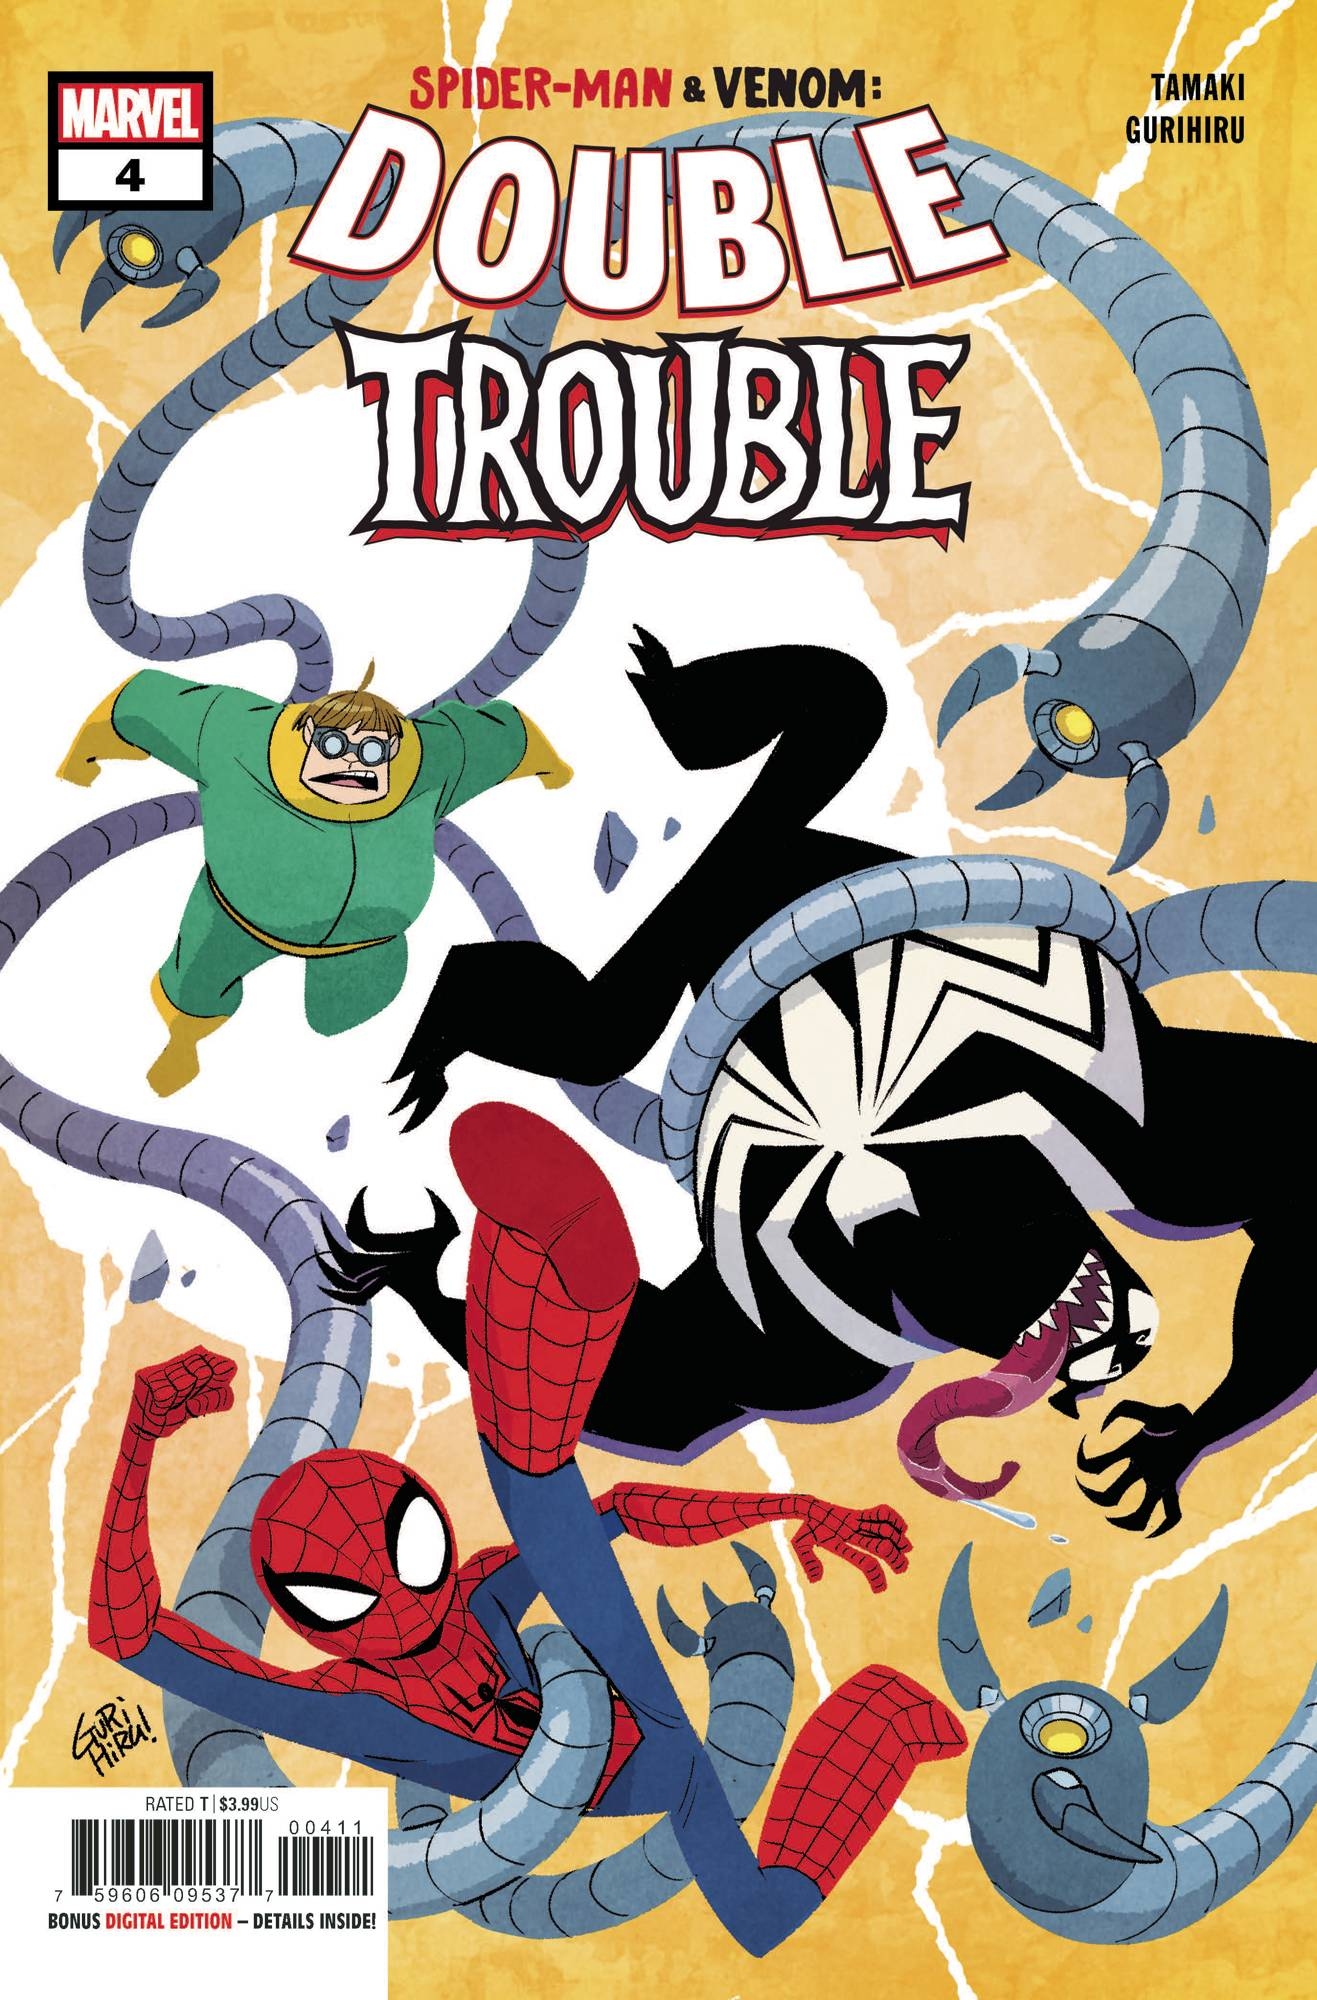 Spider-Man & Venom: Double Trouble #4 (2020)